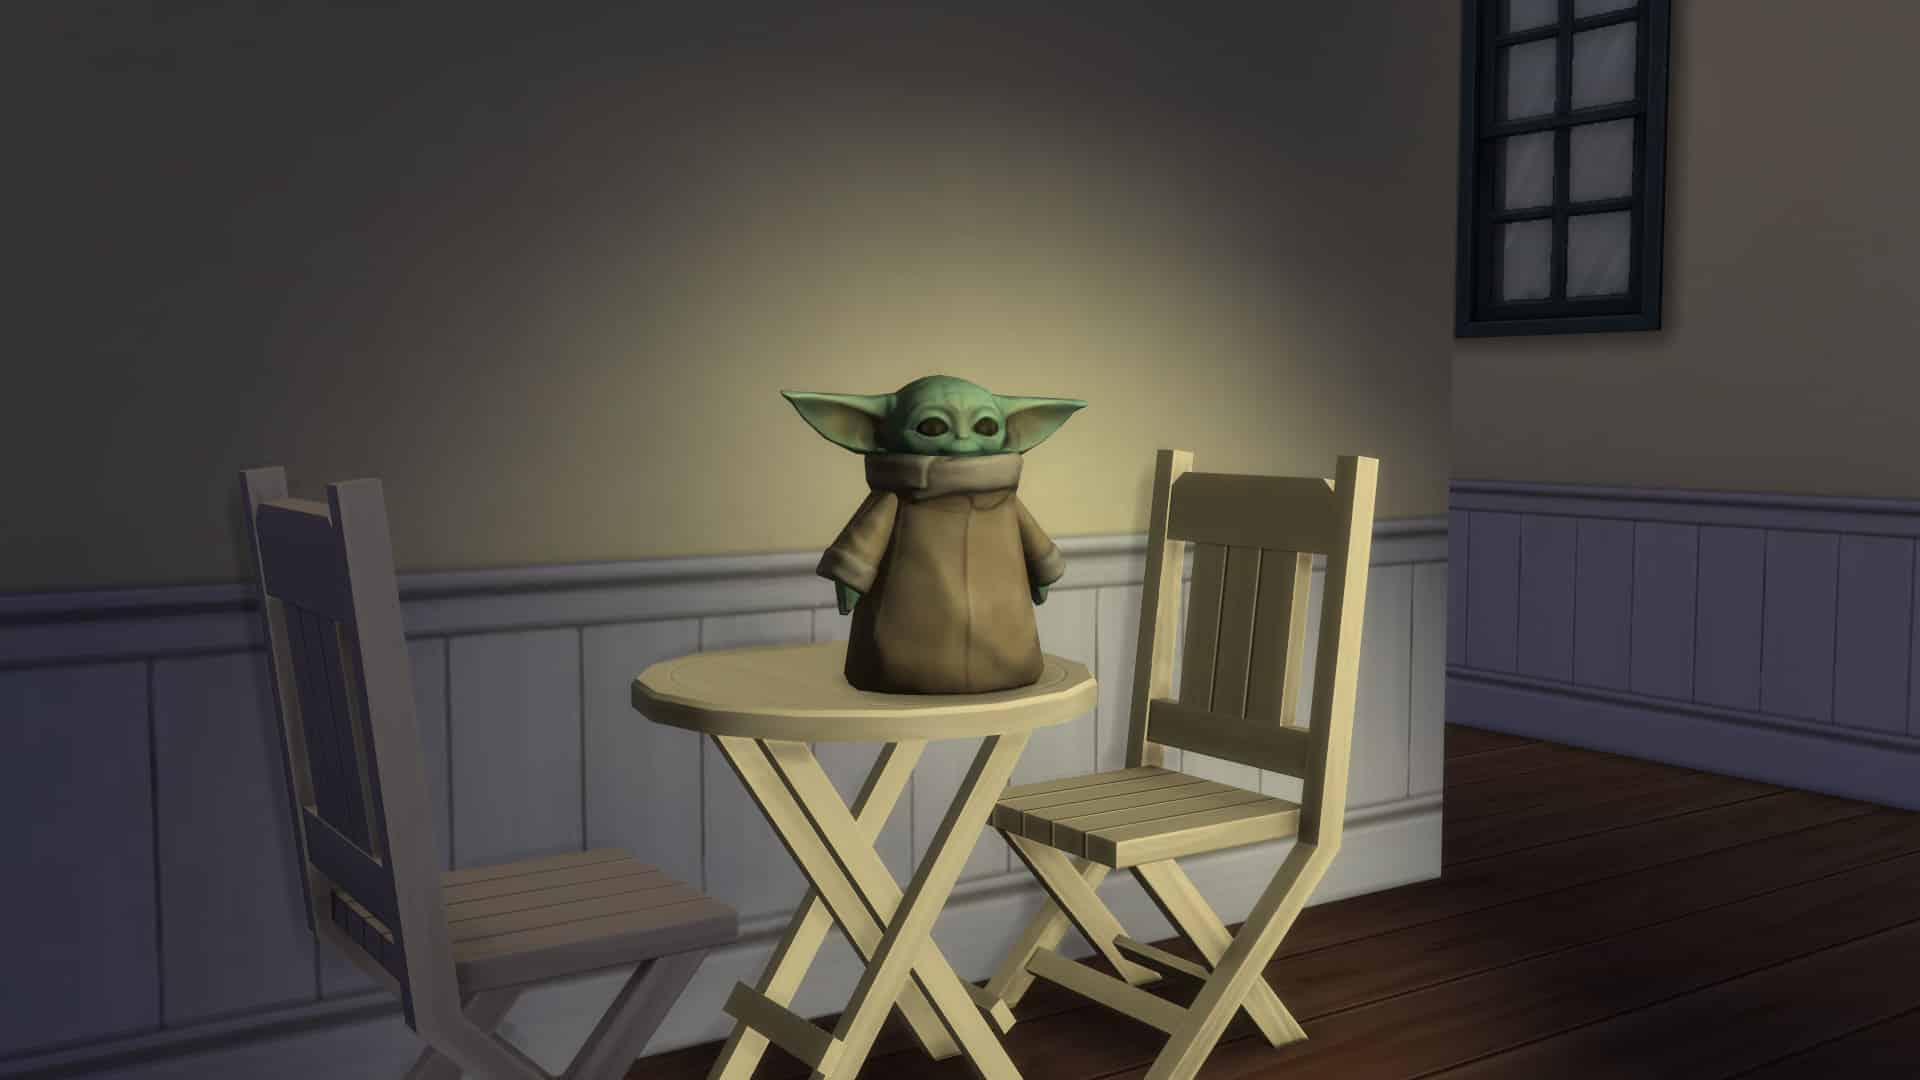 The Sims 4 S Latest Update Adds Baby Yoda